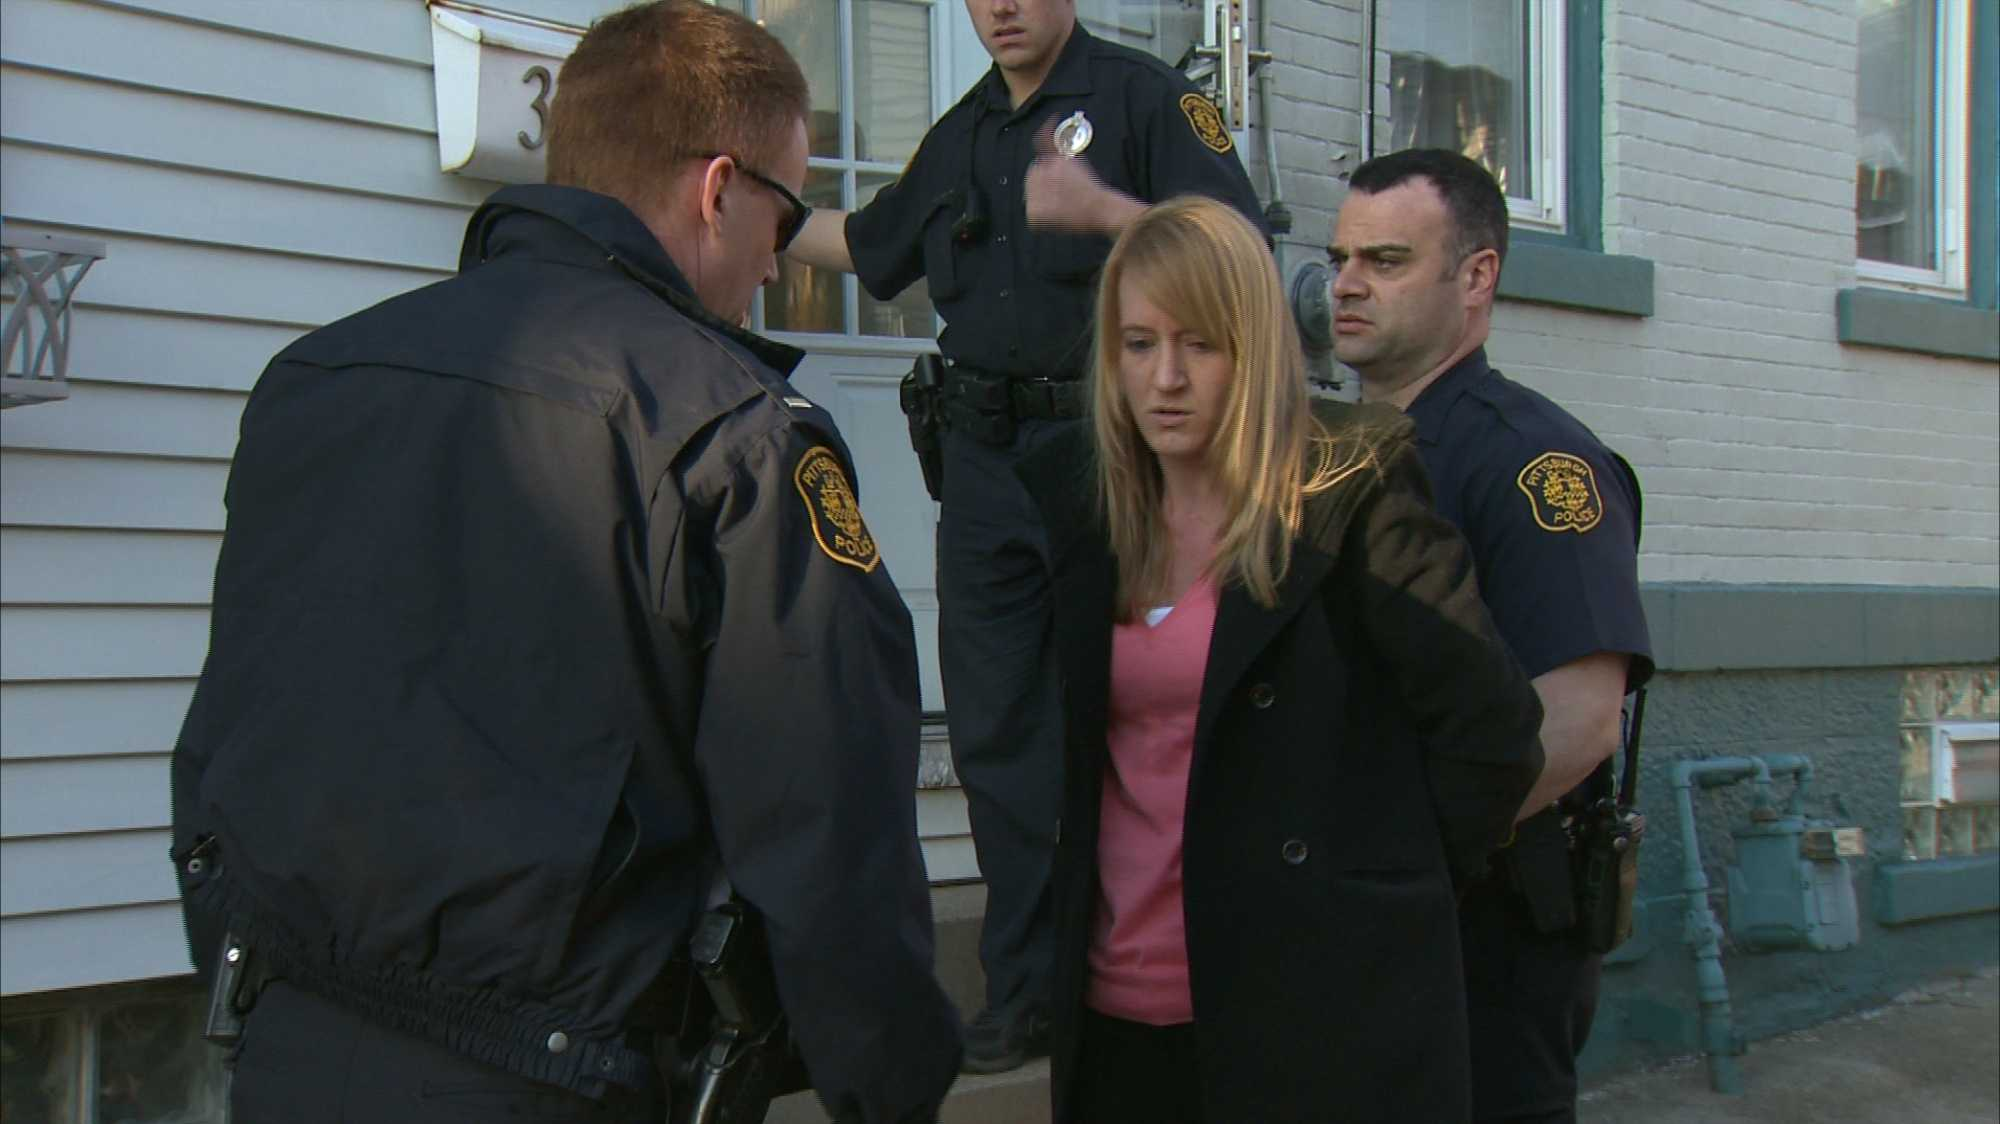 Geraldine Alcorn was arrested by police at her Bloomfield home.